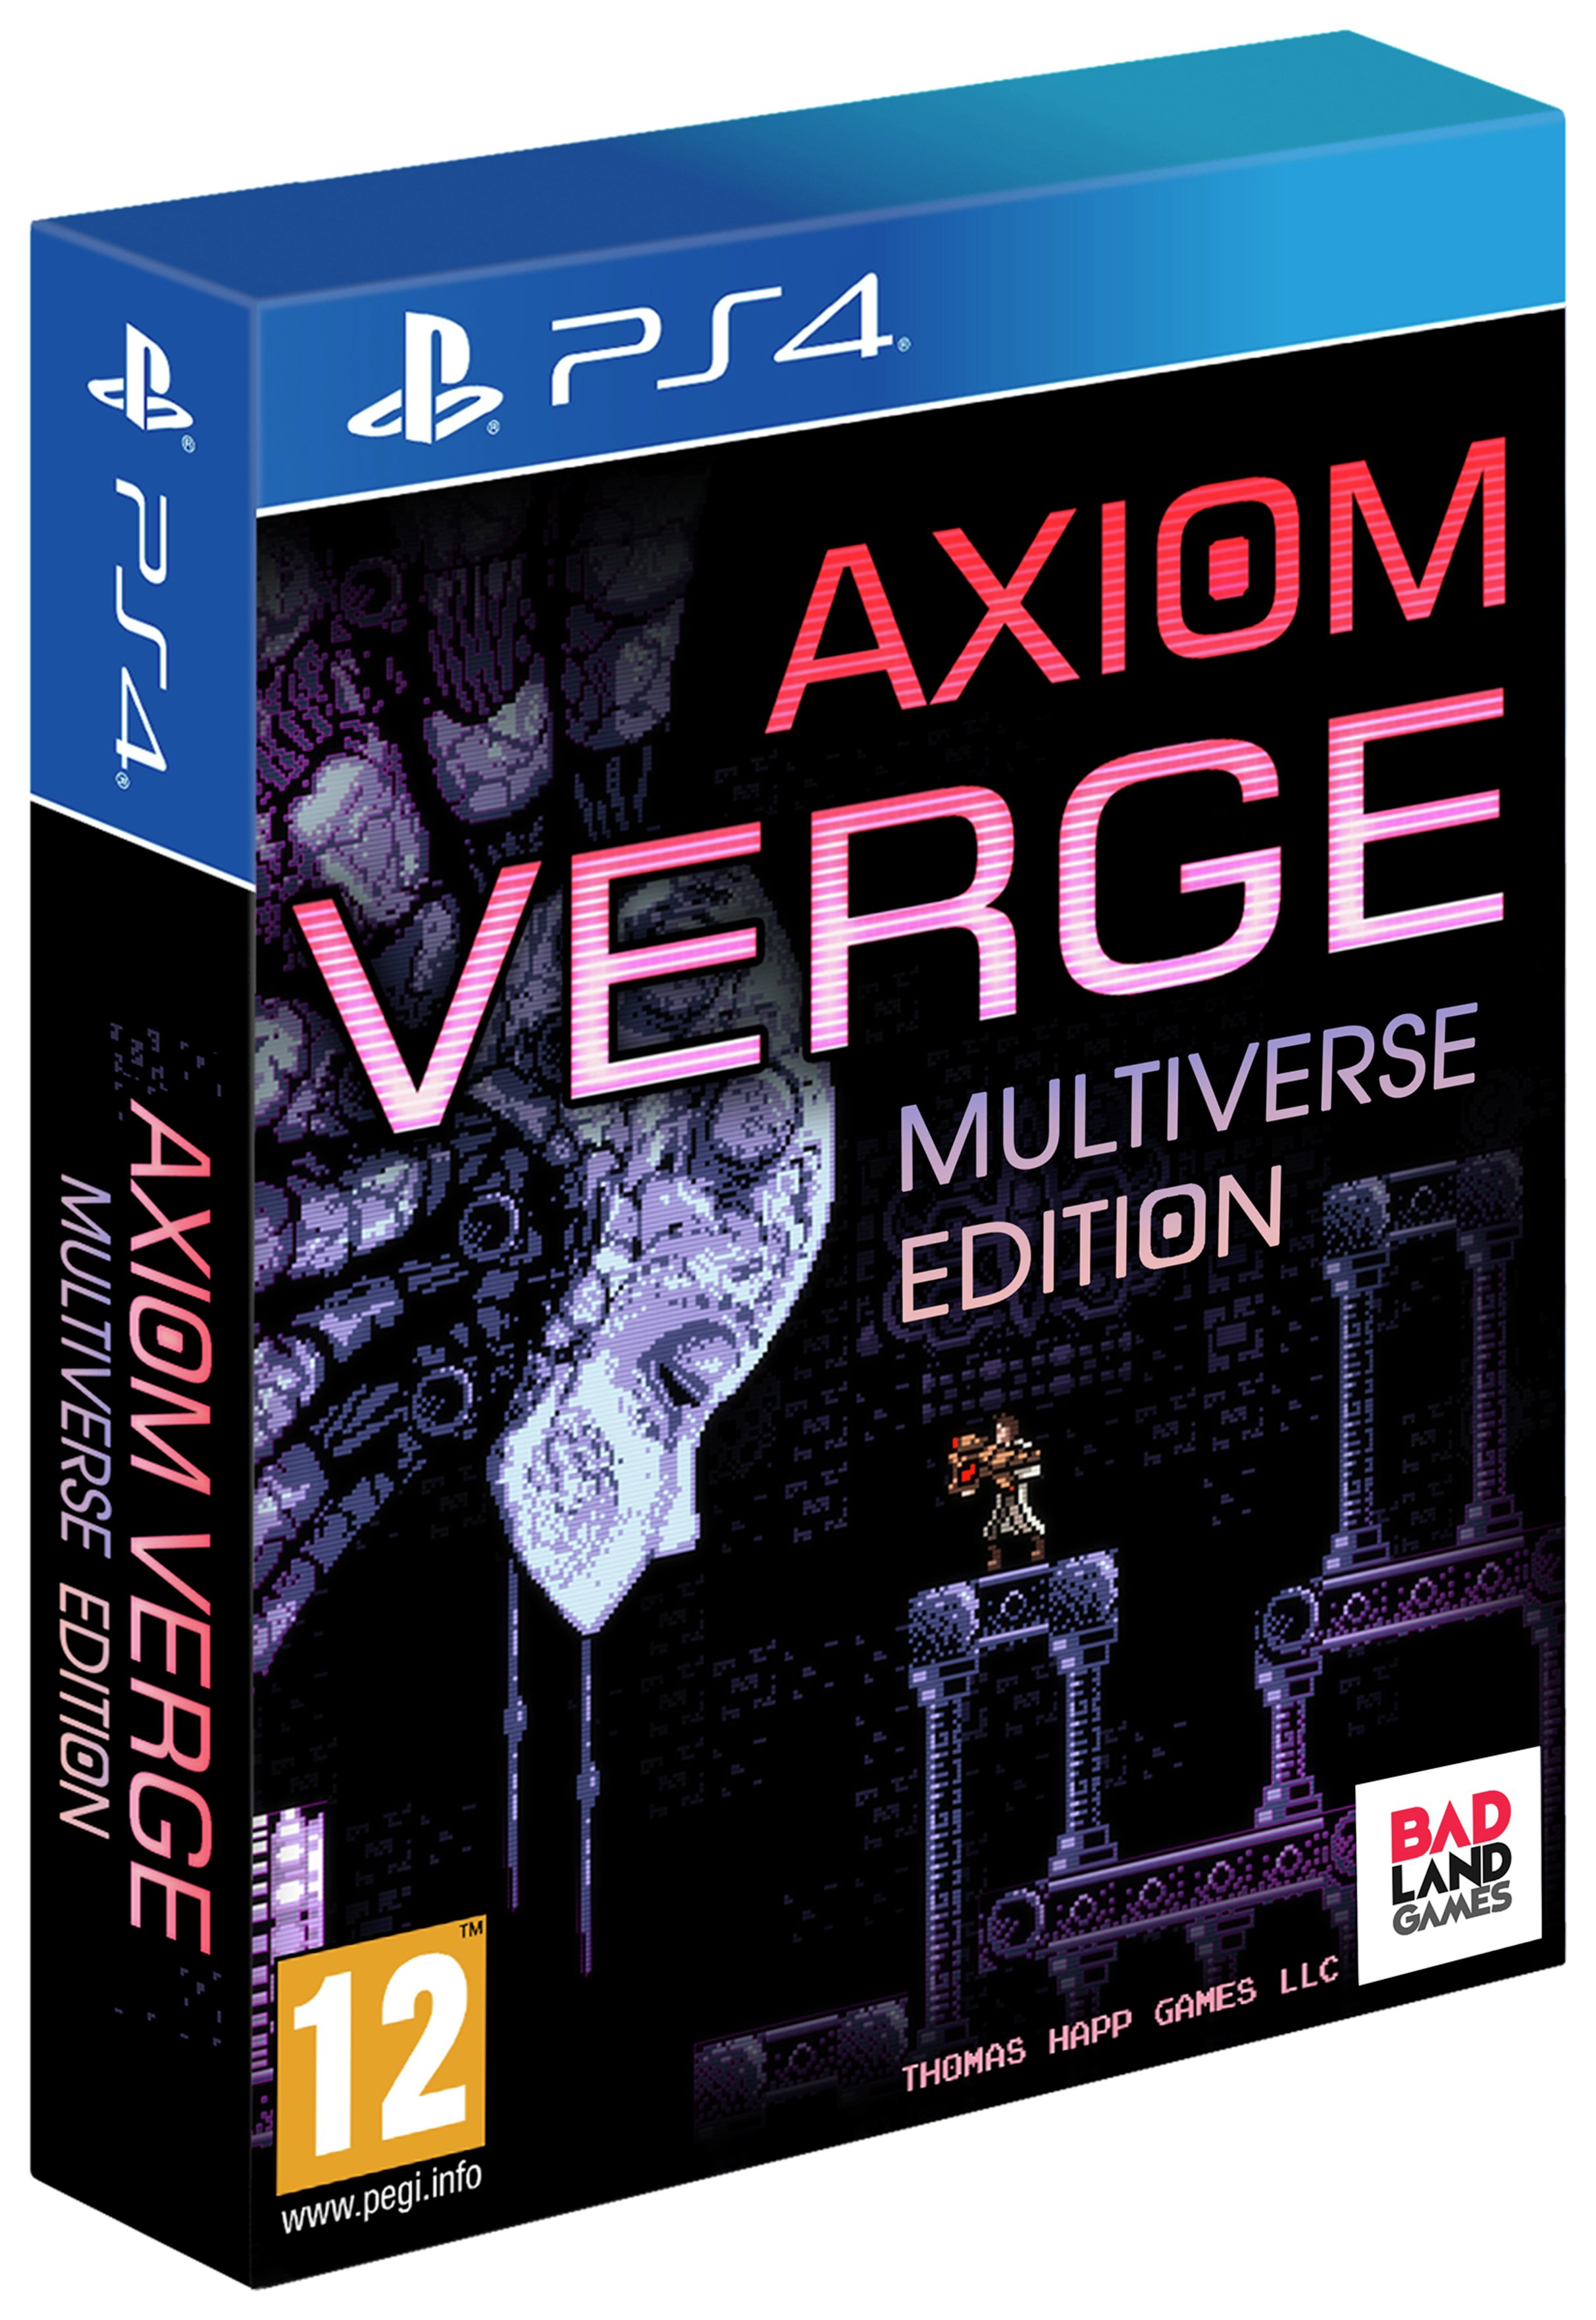 Image of Axiom Verge: Multiverse Edition PS4 Pre-Order Game